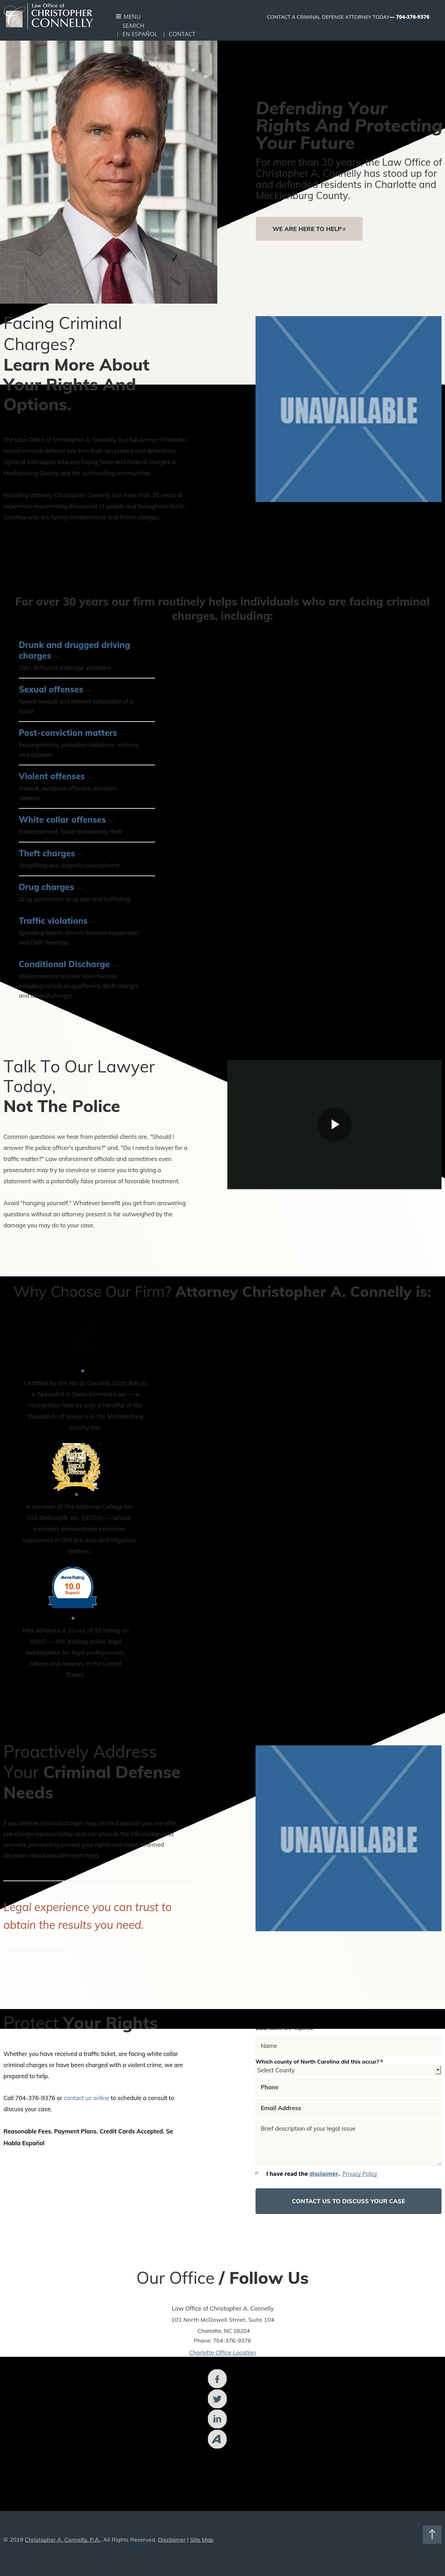 Law Office of Christopher A. Connelly - Charlotte NC Lawyers